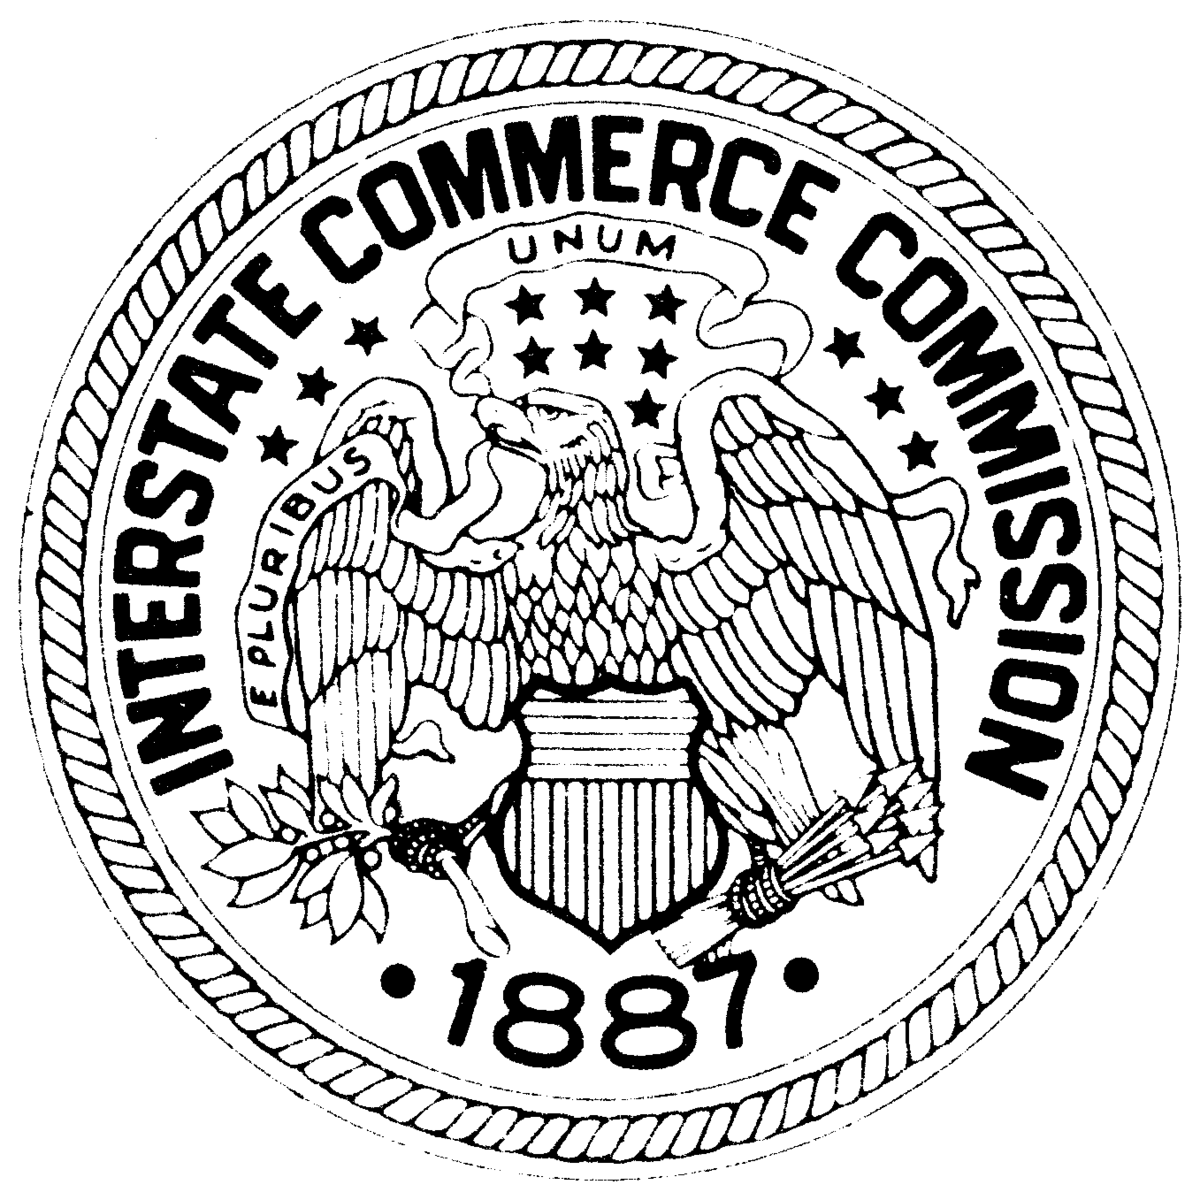 interstate commerce commission wikipedia